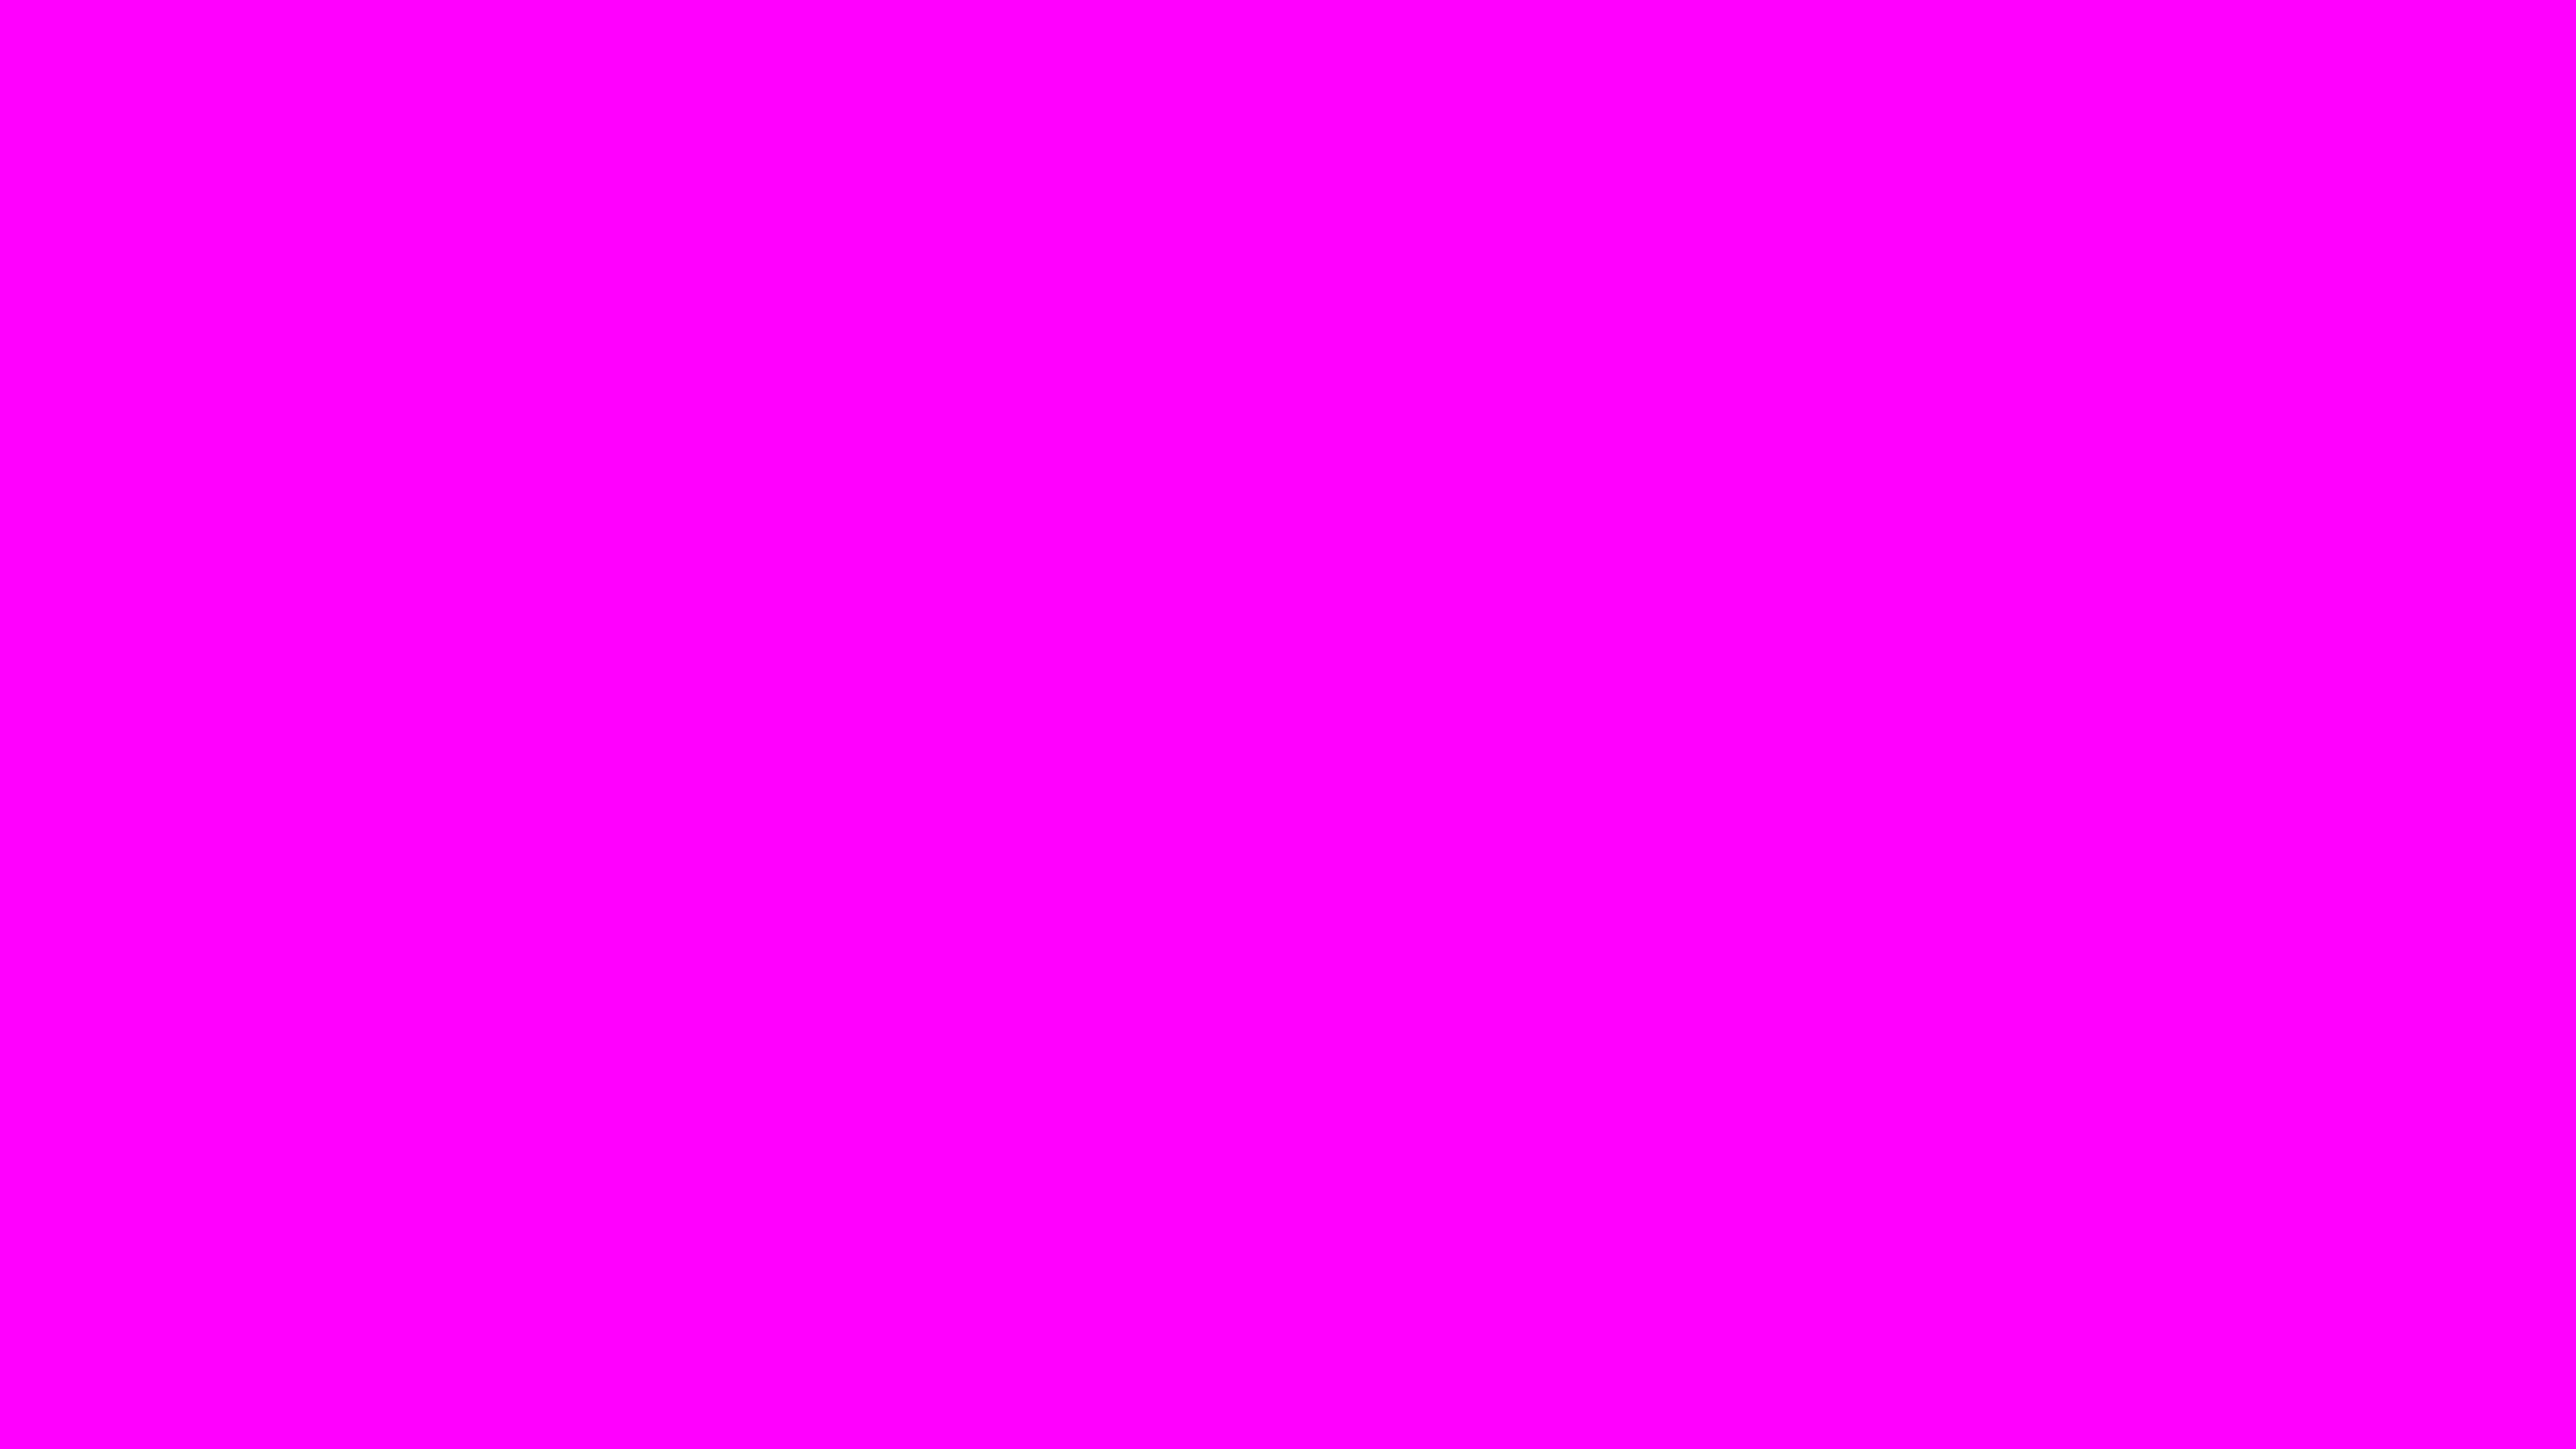 3840x2160 Fuchsia Solid Color Background